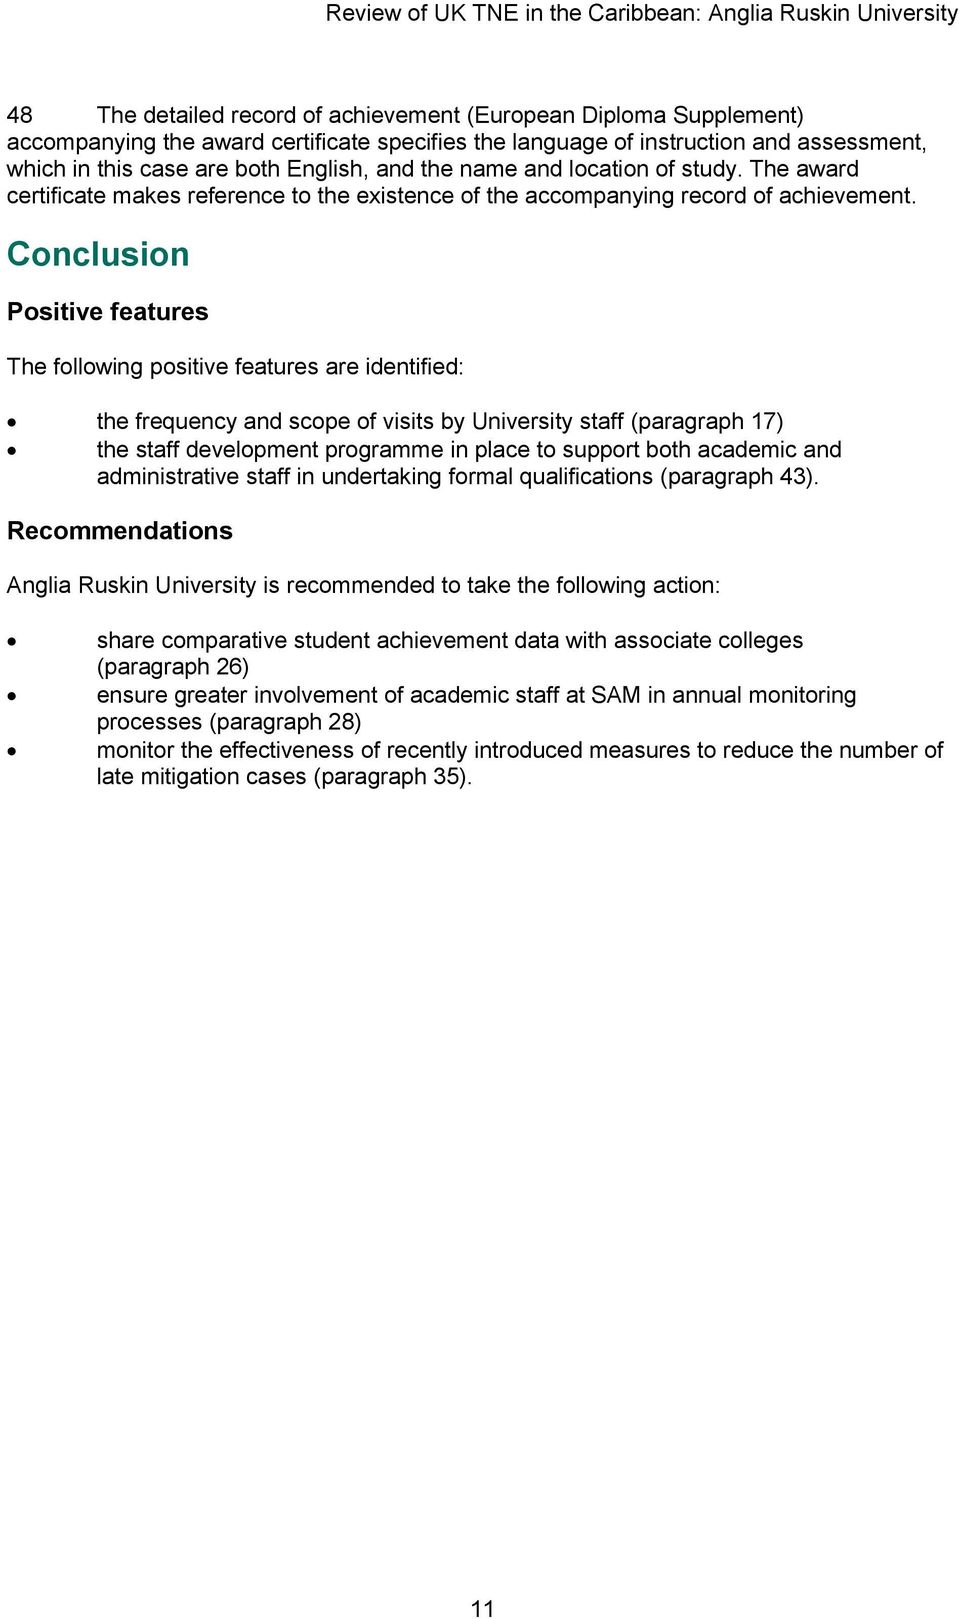 Conclusion Positive features The following positive features are identified: the frequency and scope of visits by University staff (paragraph 17) the staff development programme in place to support